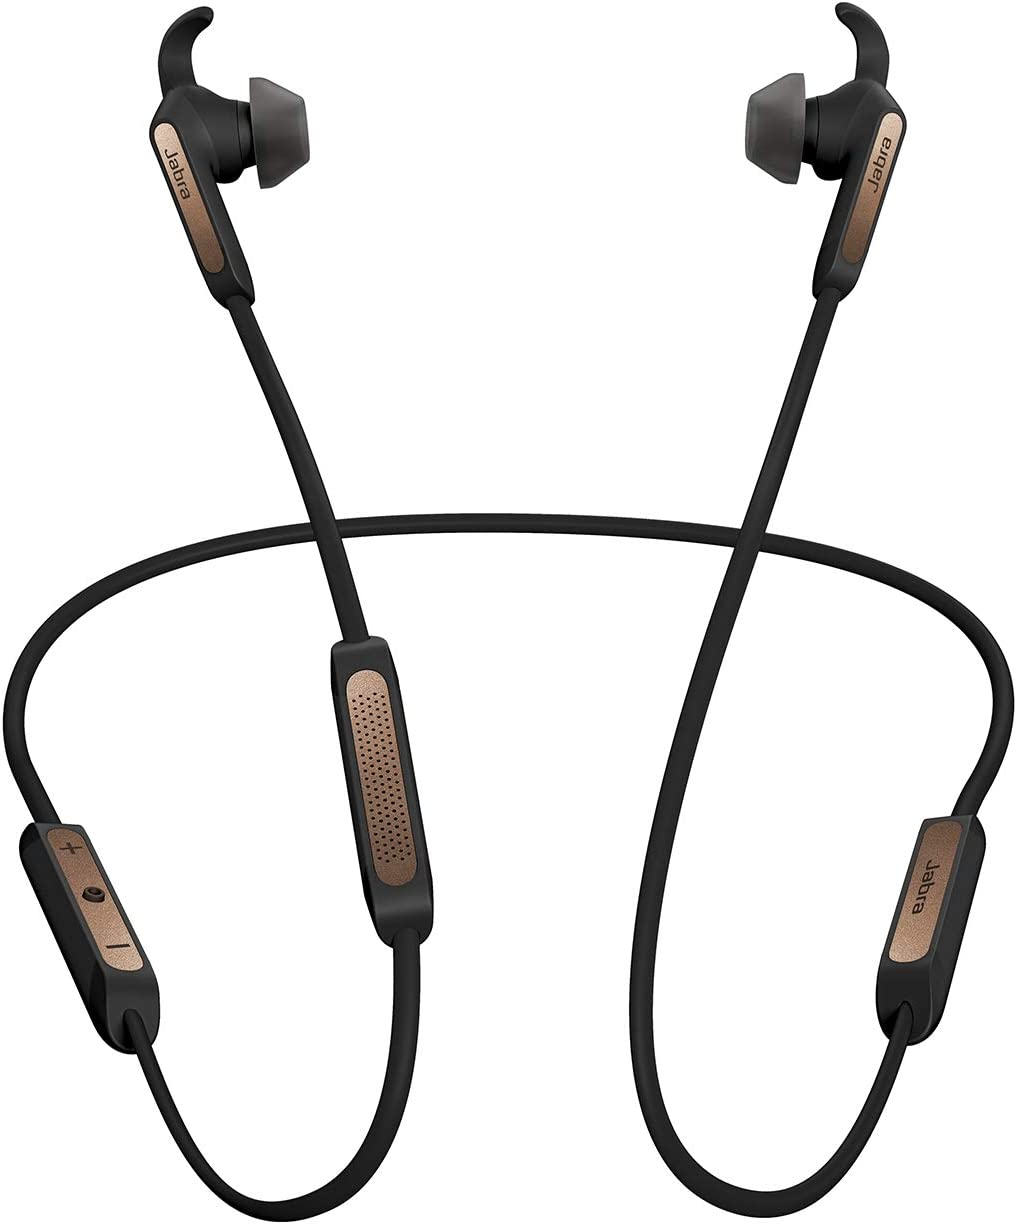 Jabra Elite 45e Rain resistant Bluetooth Earbuds for Wireless Calls and Music Copper Black